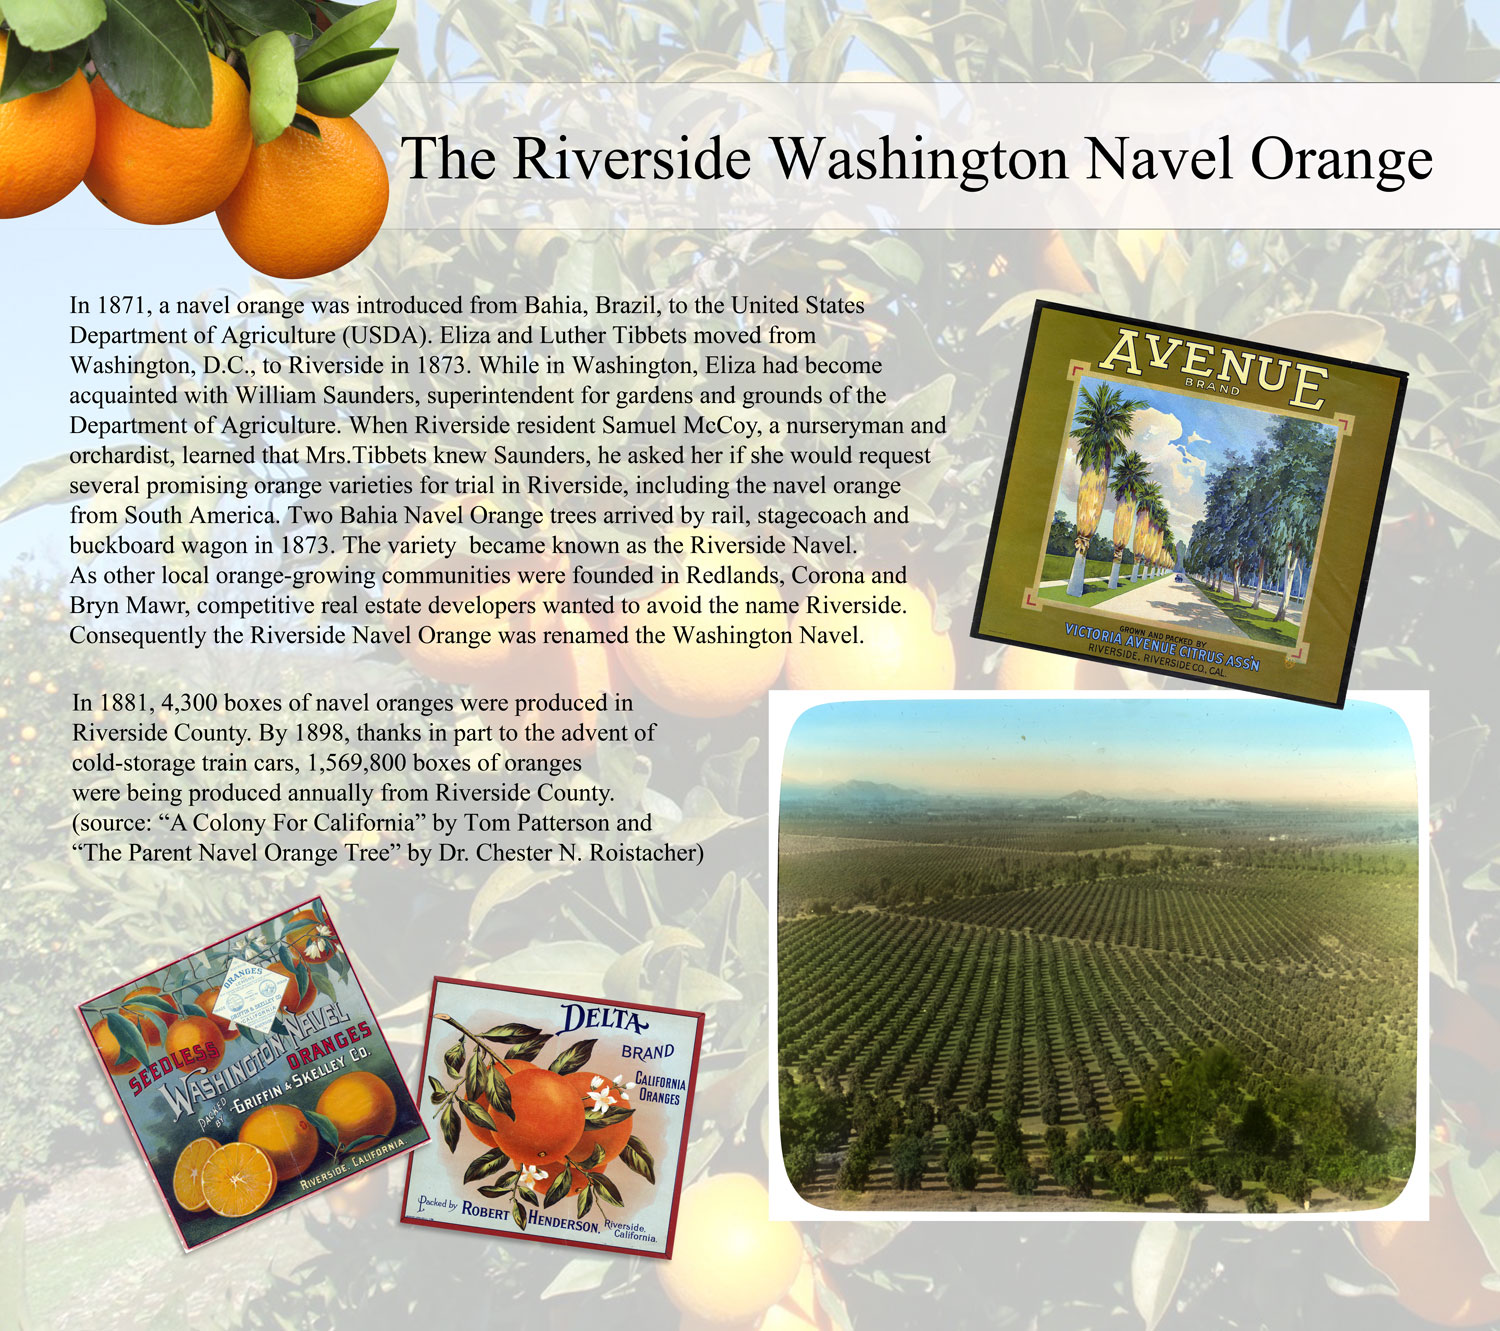 The Riverside Washington Navel Oranges